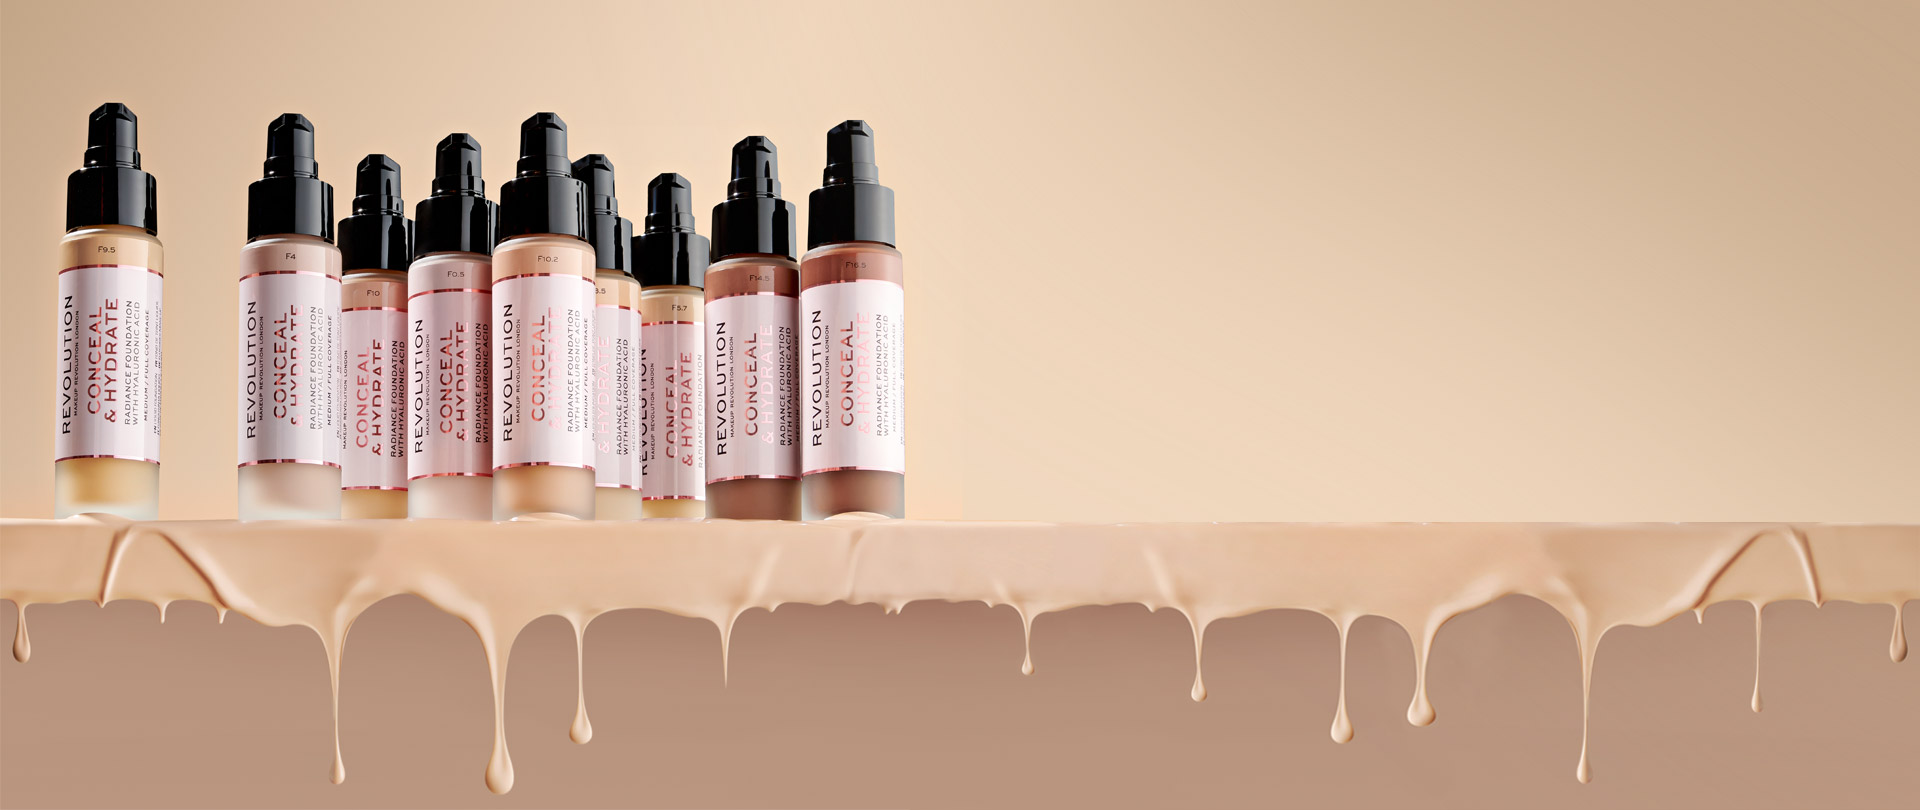 Conceal & Hydrate Products Image